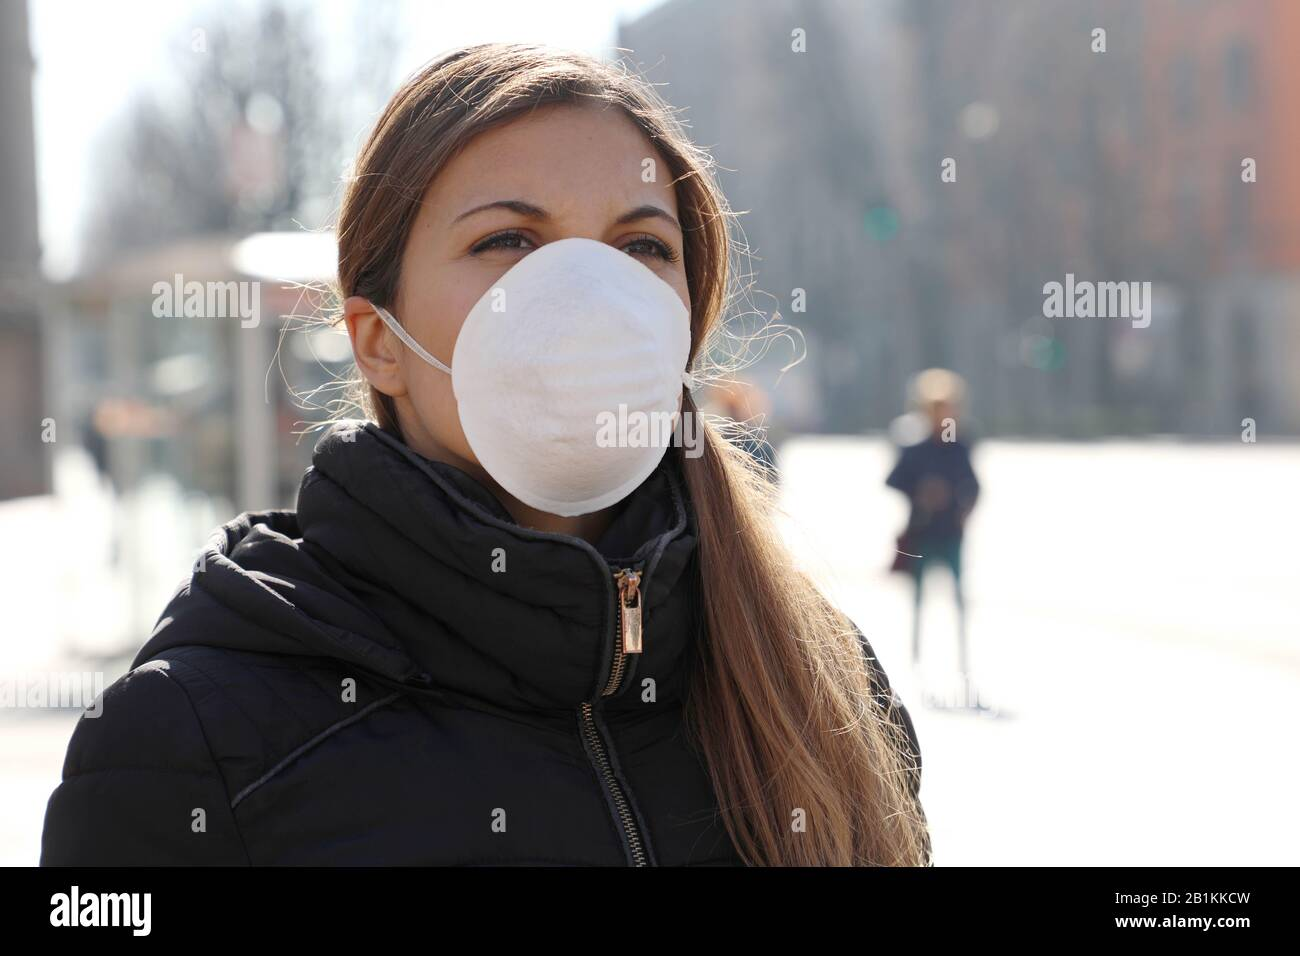 protective virus face mask